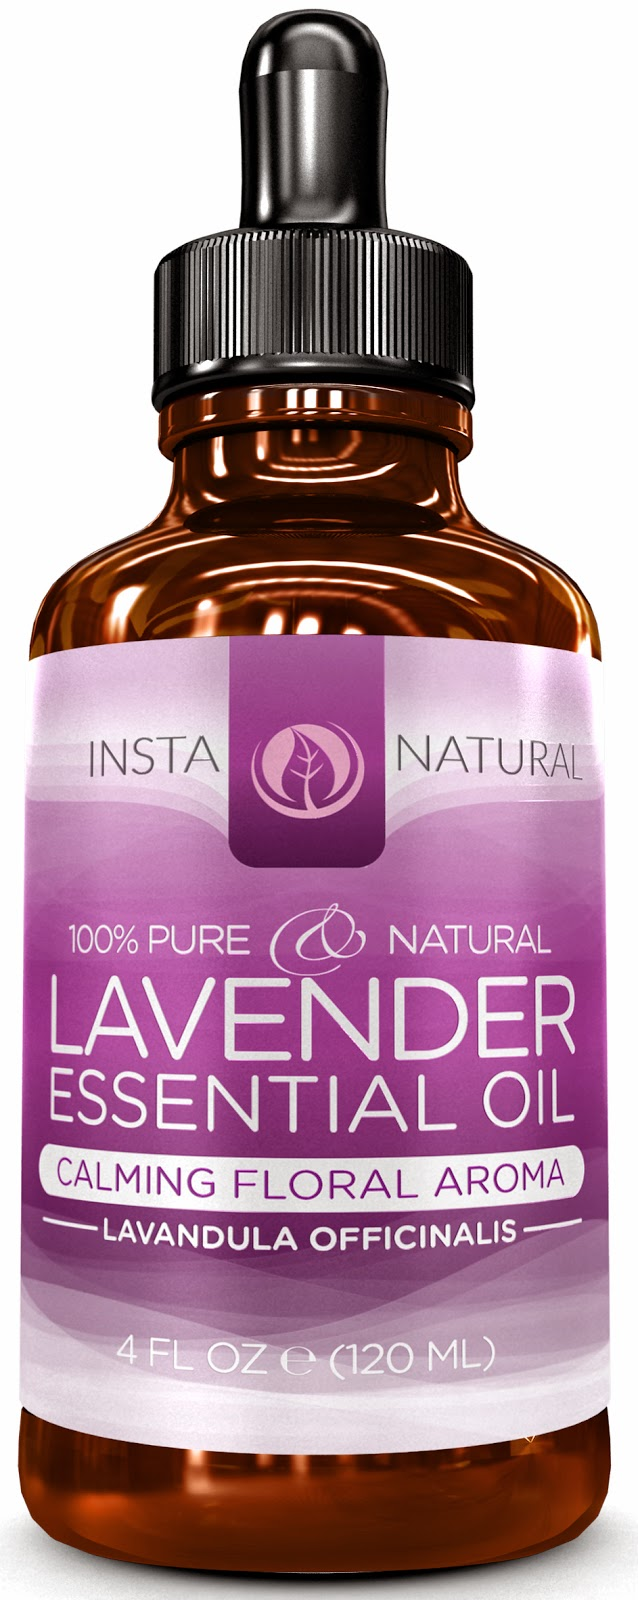 Peppermint oil and lavender oil